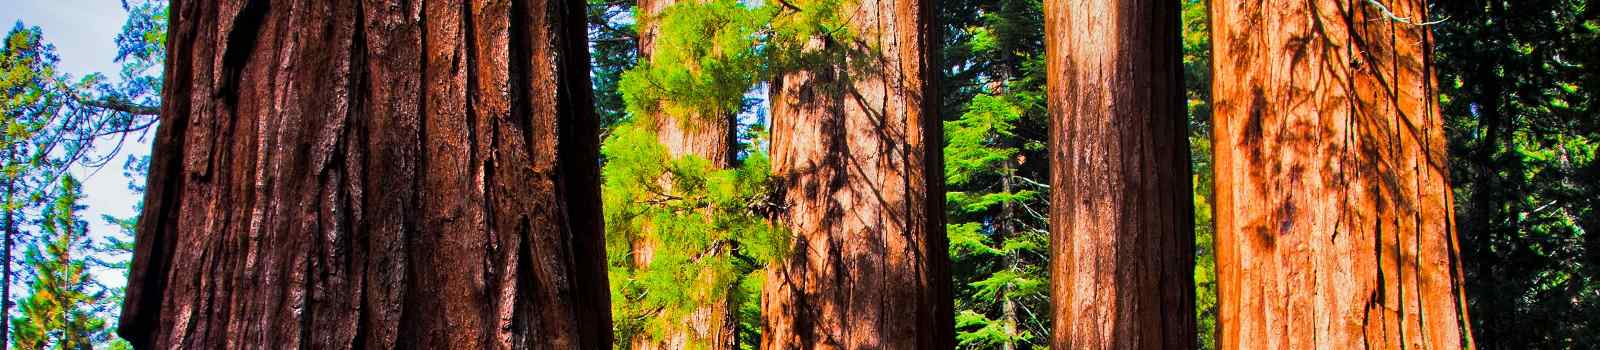 SEQUOIA-NATIONALPARK  Kalifornien Yosemite NP GiantSequoias 109335494